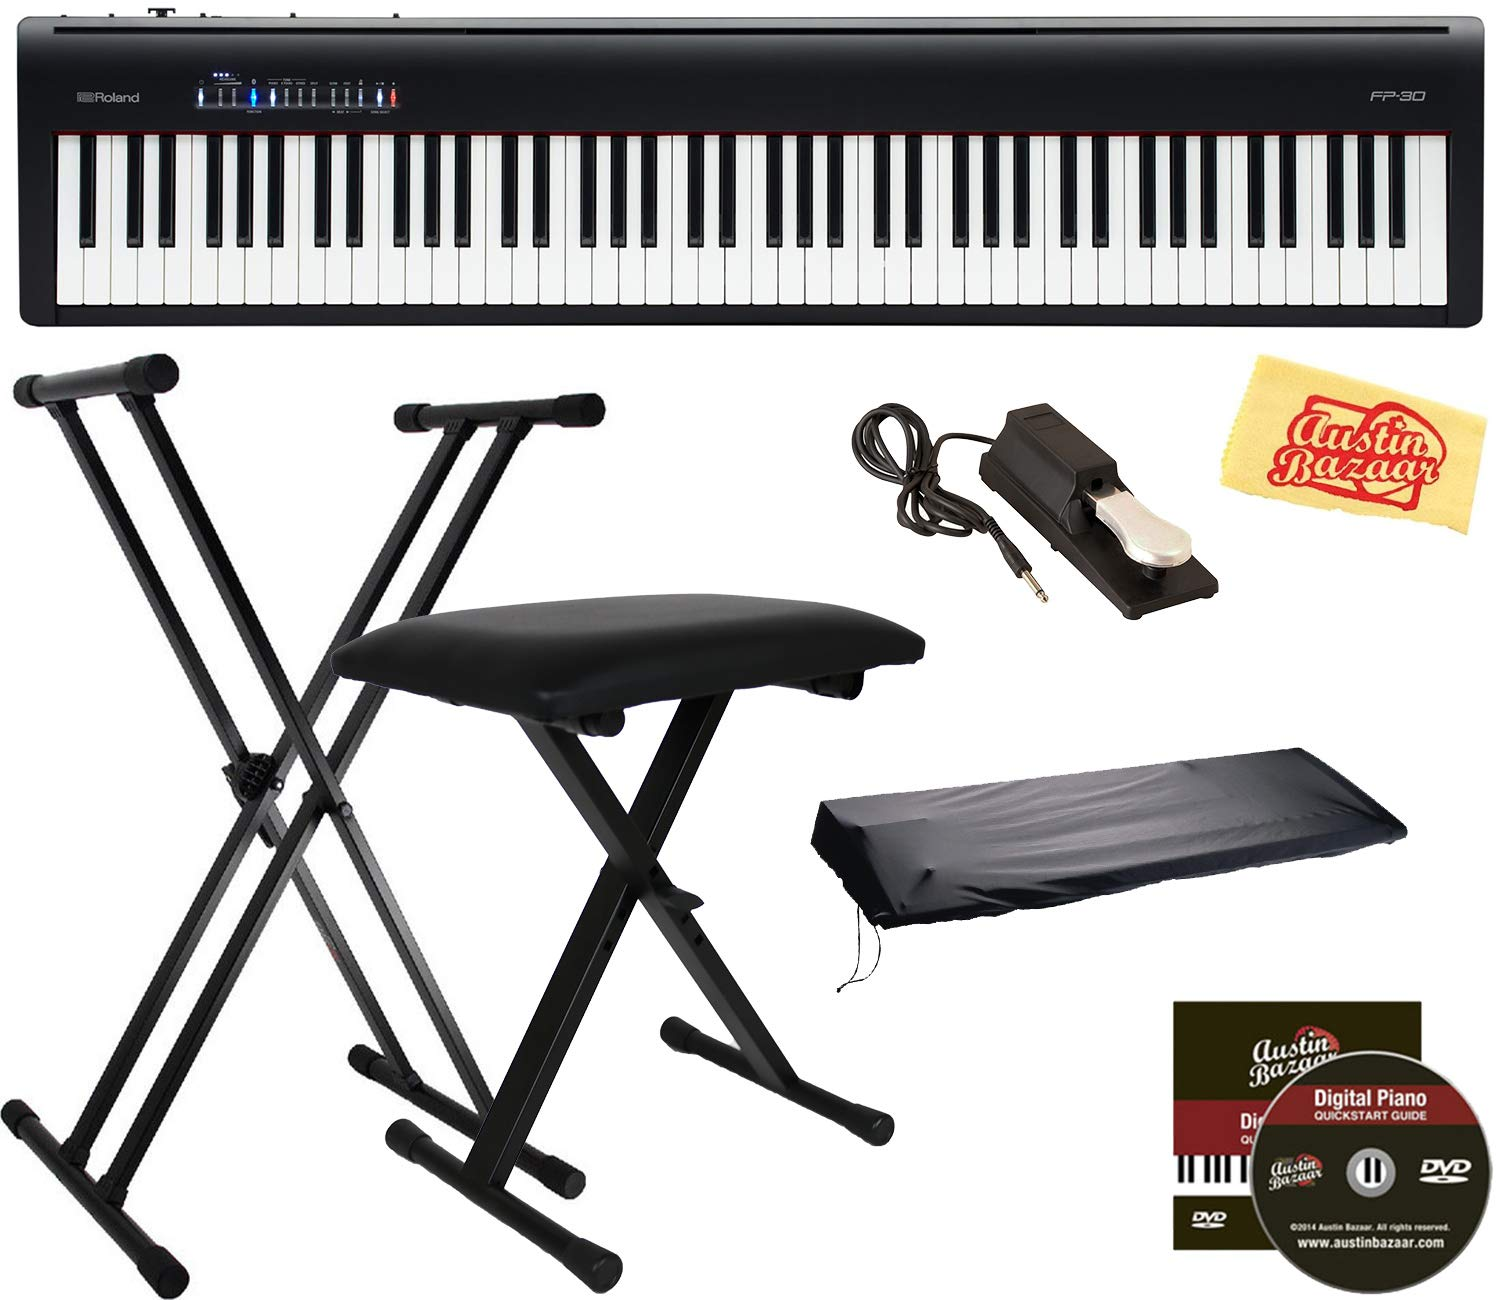 Encarguelo Com Roland Fp 30 Digital Piano Black Bundle With Roland Dp 10 Damper Pedal Adjustable Stand Bench Dust Cover Austin Bazaar Instructional Dvd And Polishing Cloth